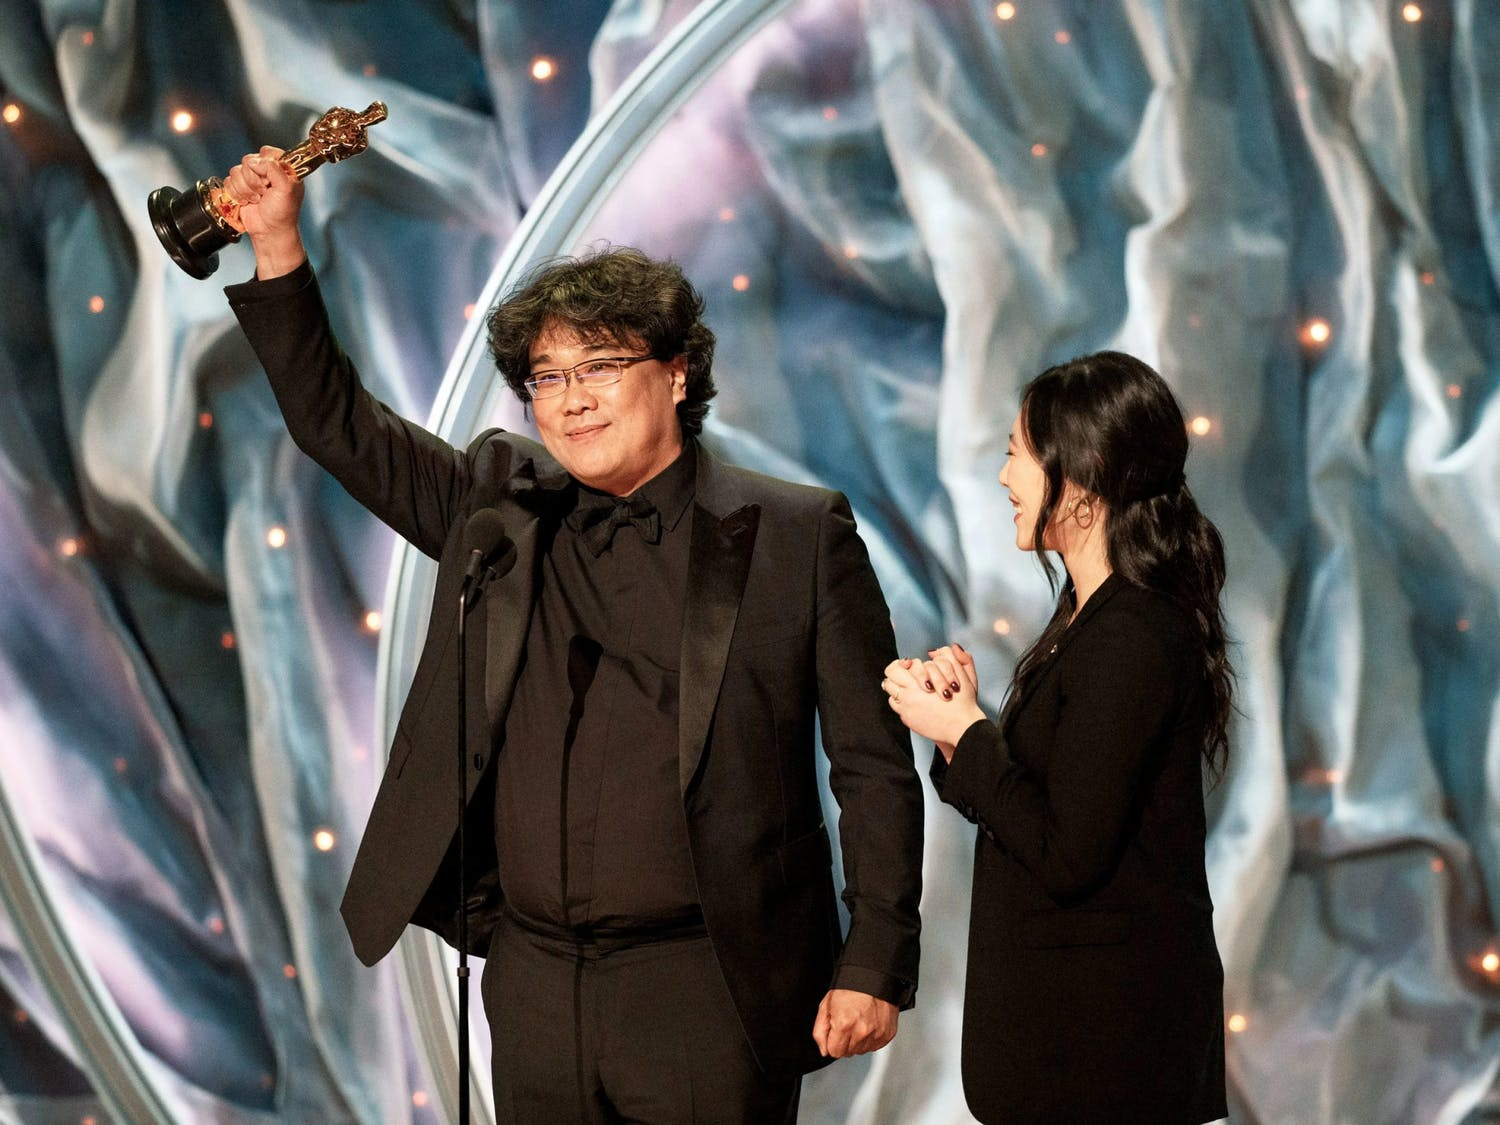 """Bong Joon-ho's """"Parasite"""" won Best Picture at last Sunday's Oscars ceremony, becoming the first international film to do so."""